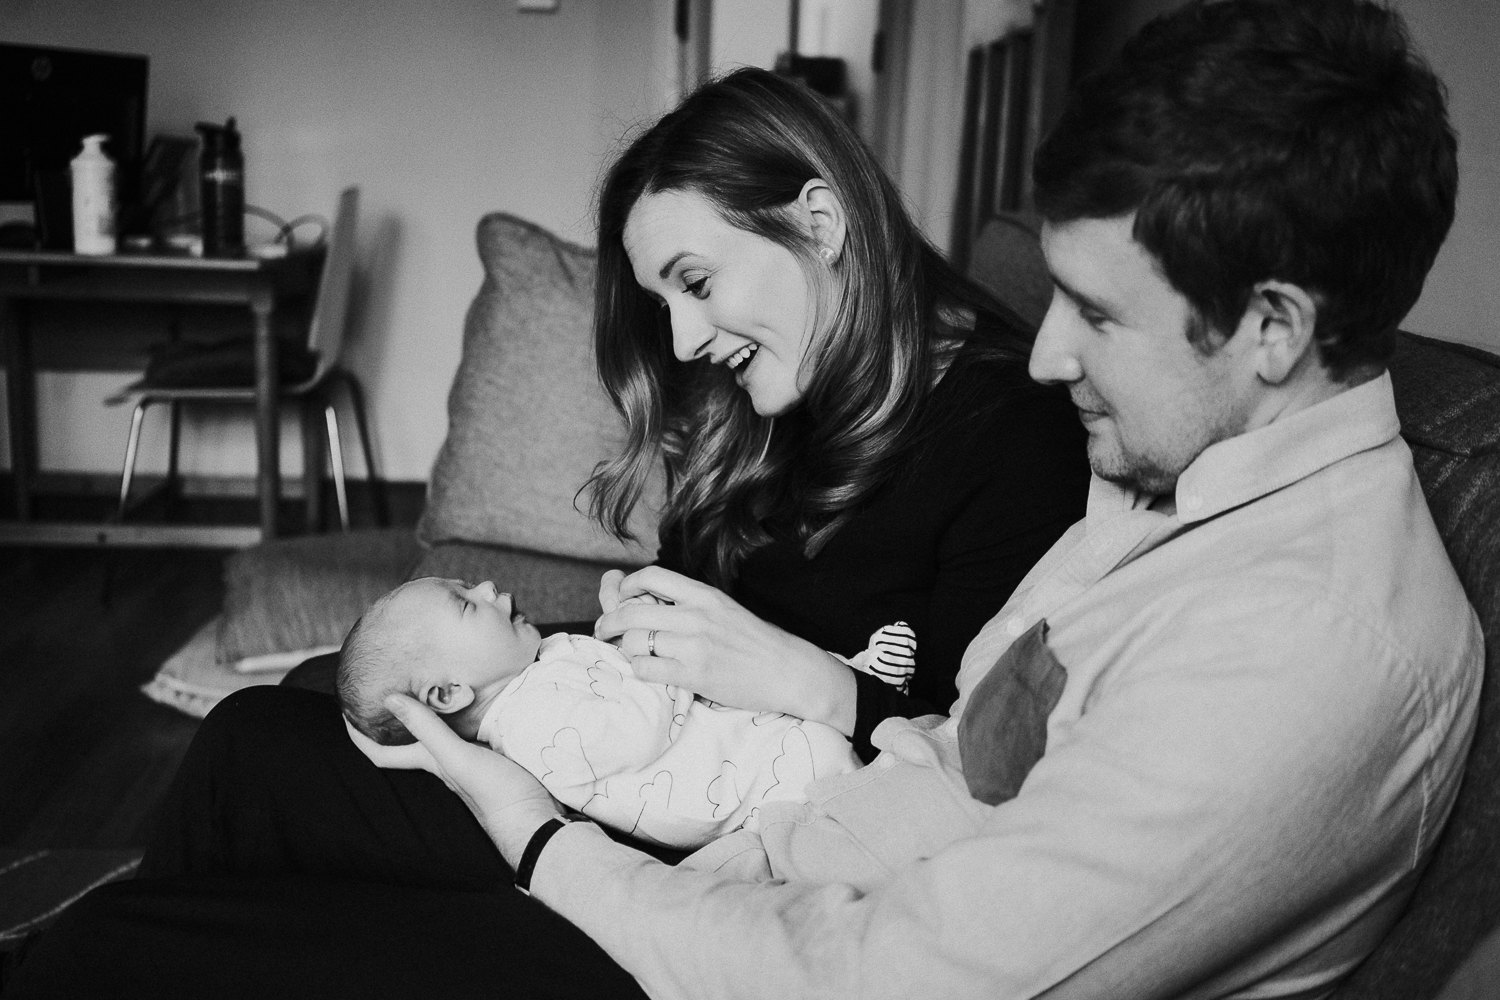 newborn photo session at home in highgate black and white photo of baby boy with parents